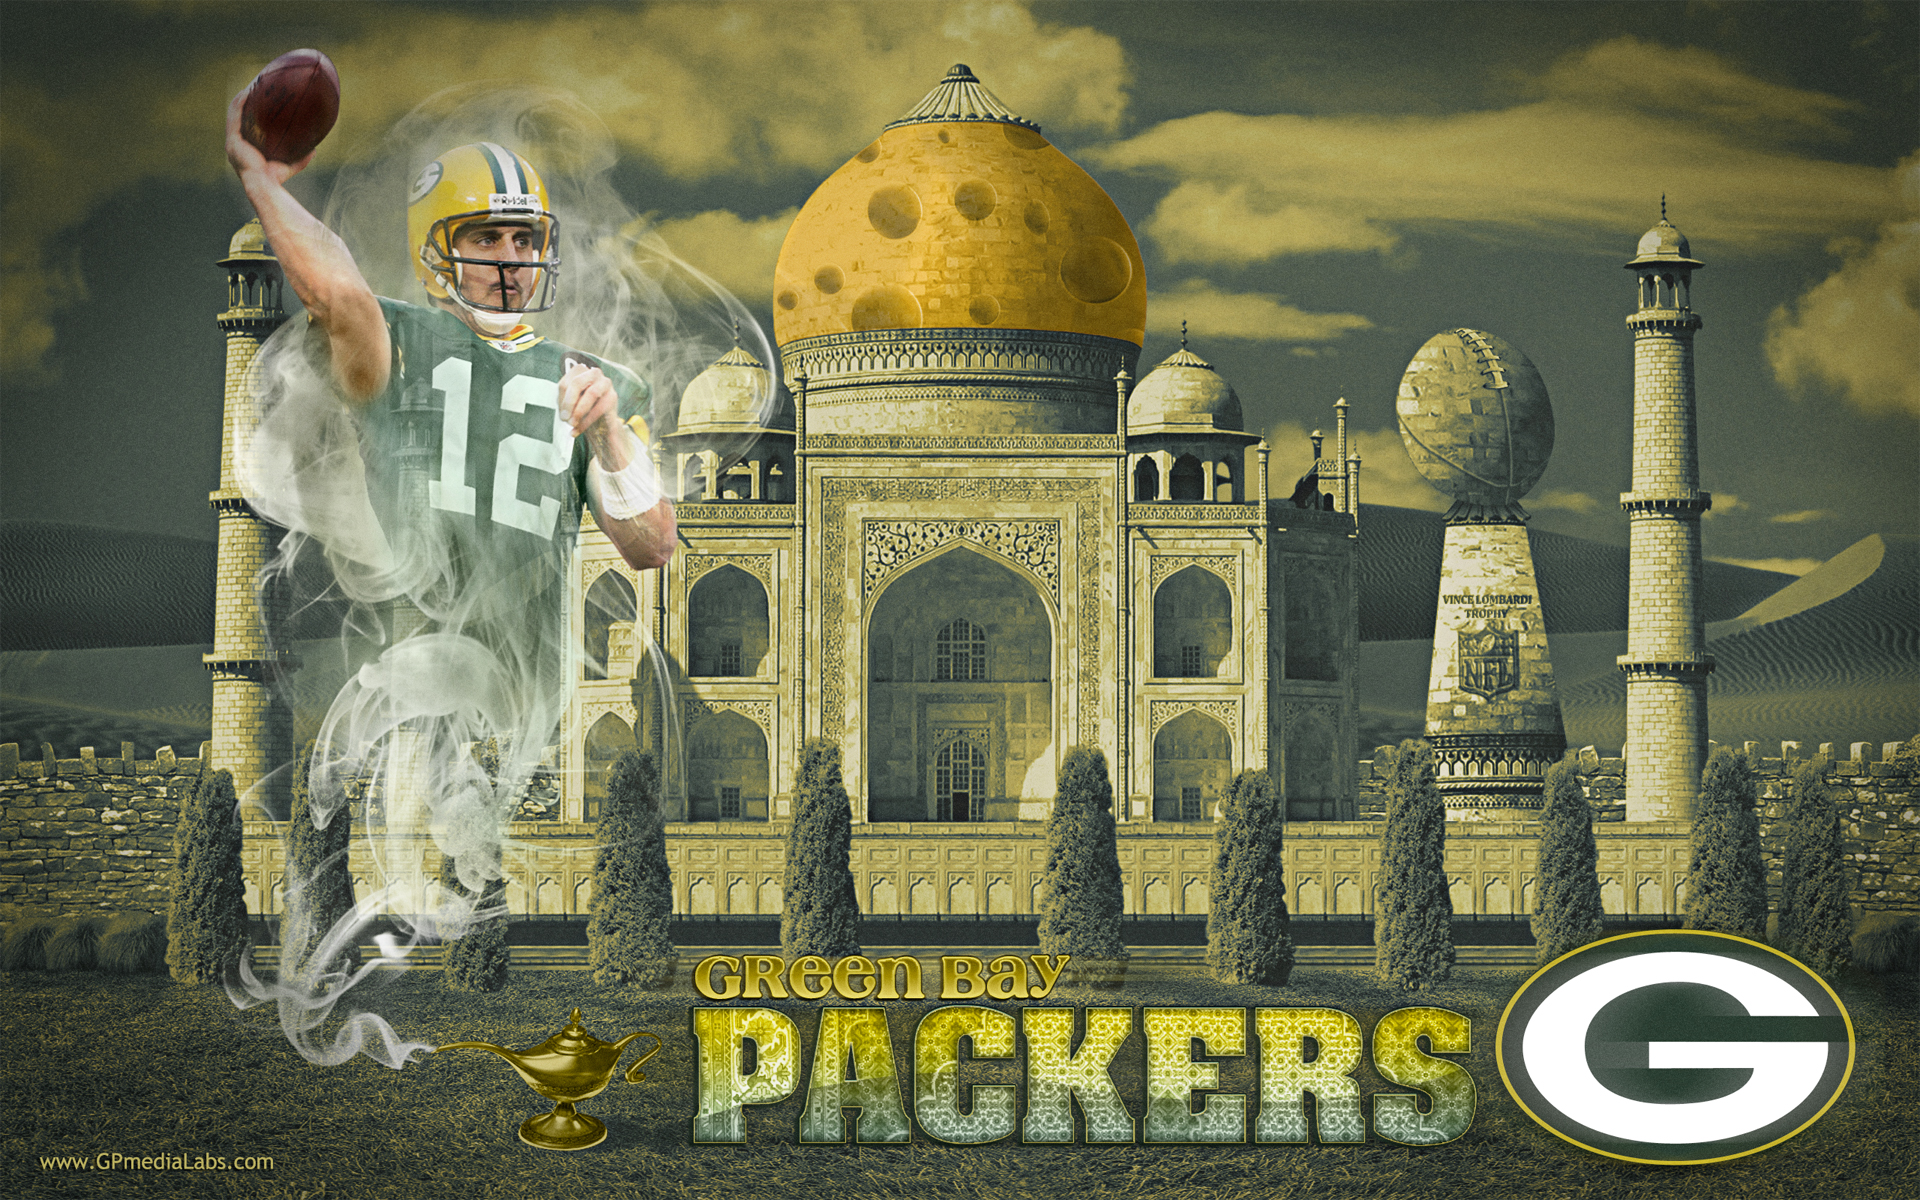 download wallpaper 1440 x 900 • 1920x1200 • 2560 x 1600 green bay packers wallpaper aaron rodgers